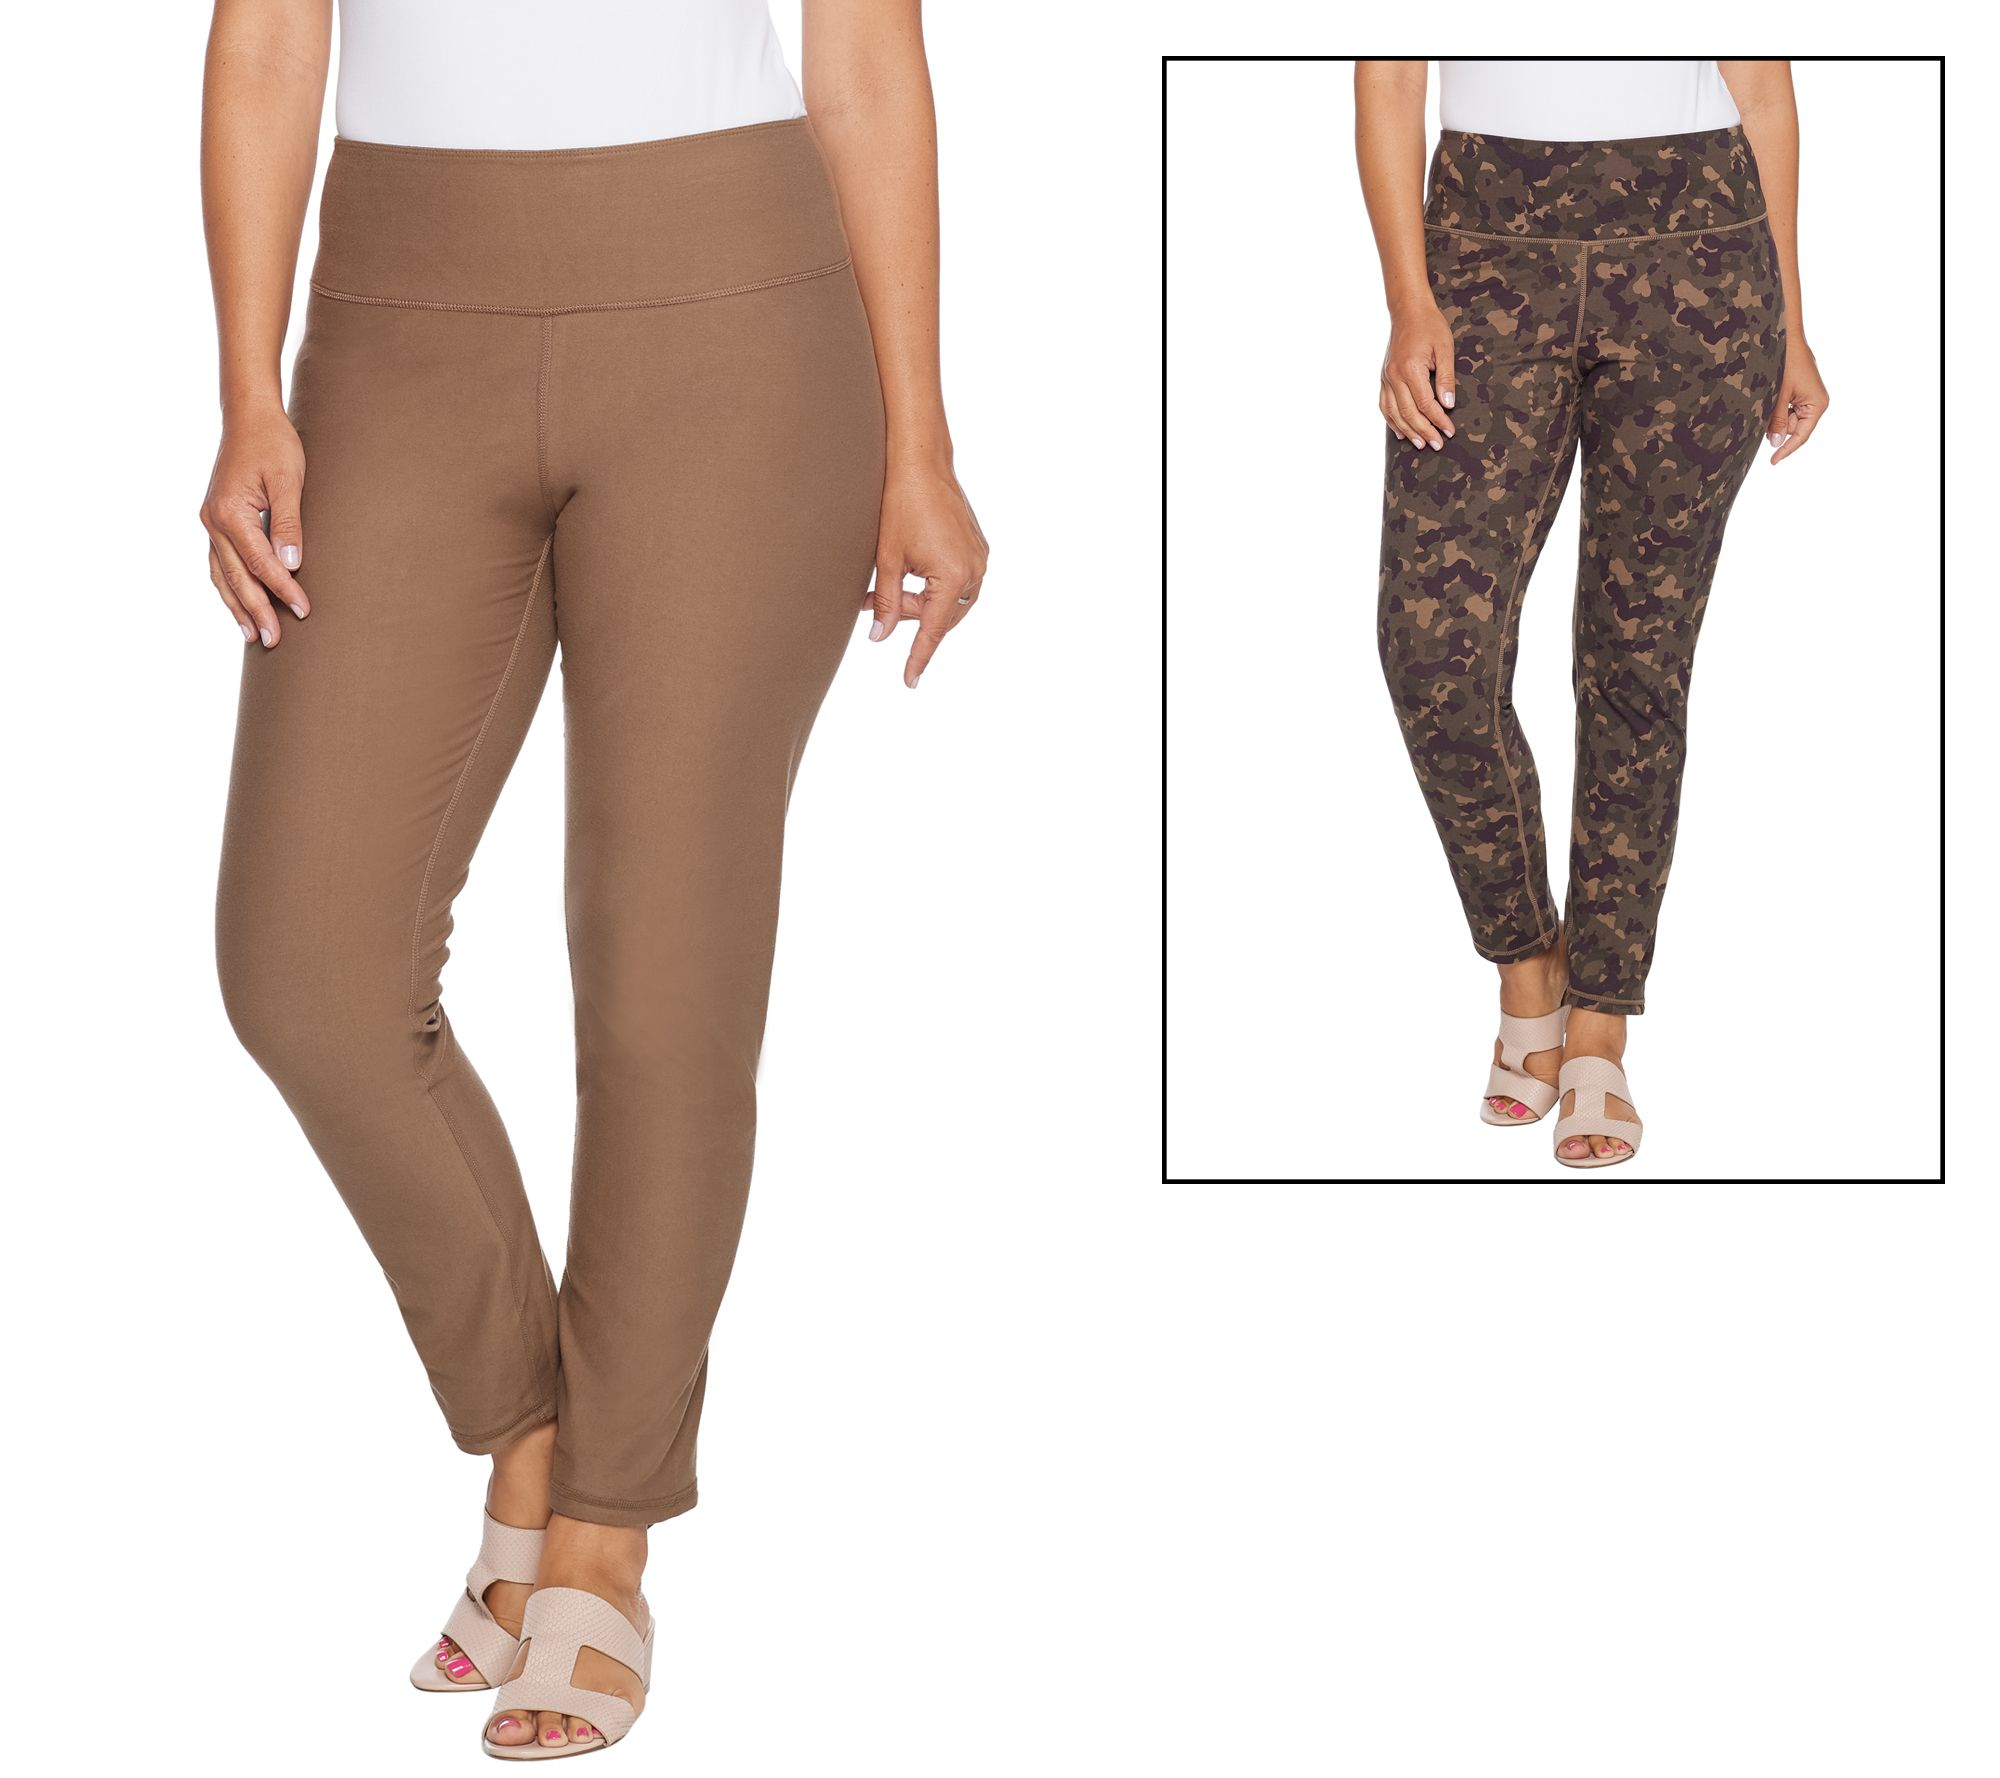 ef102357a Women with Control Regular Renee's Reversibles Ankle Pants - Page 1 —  QVC.com